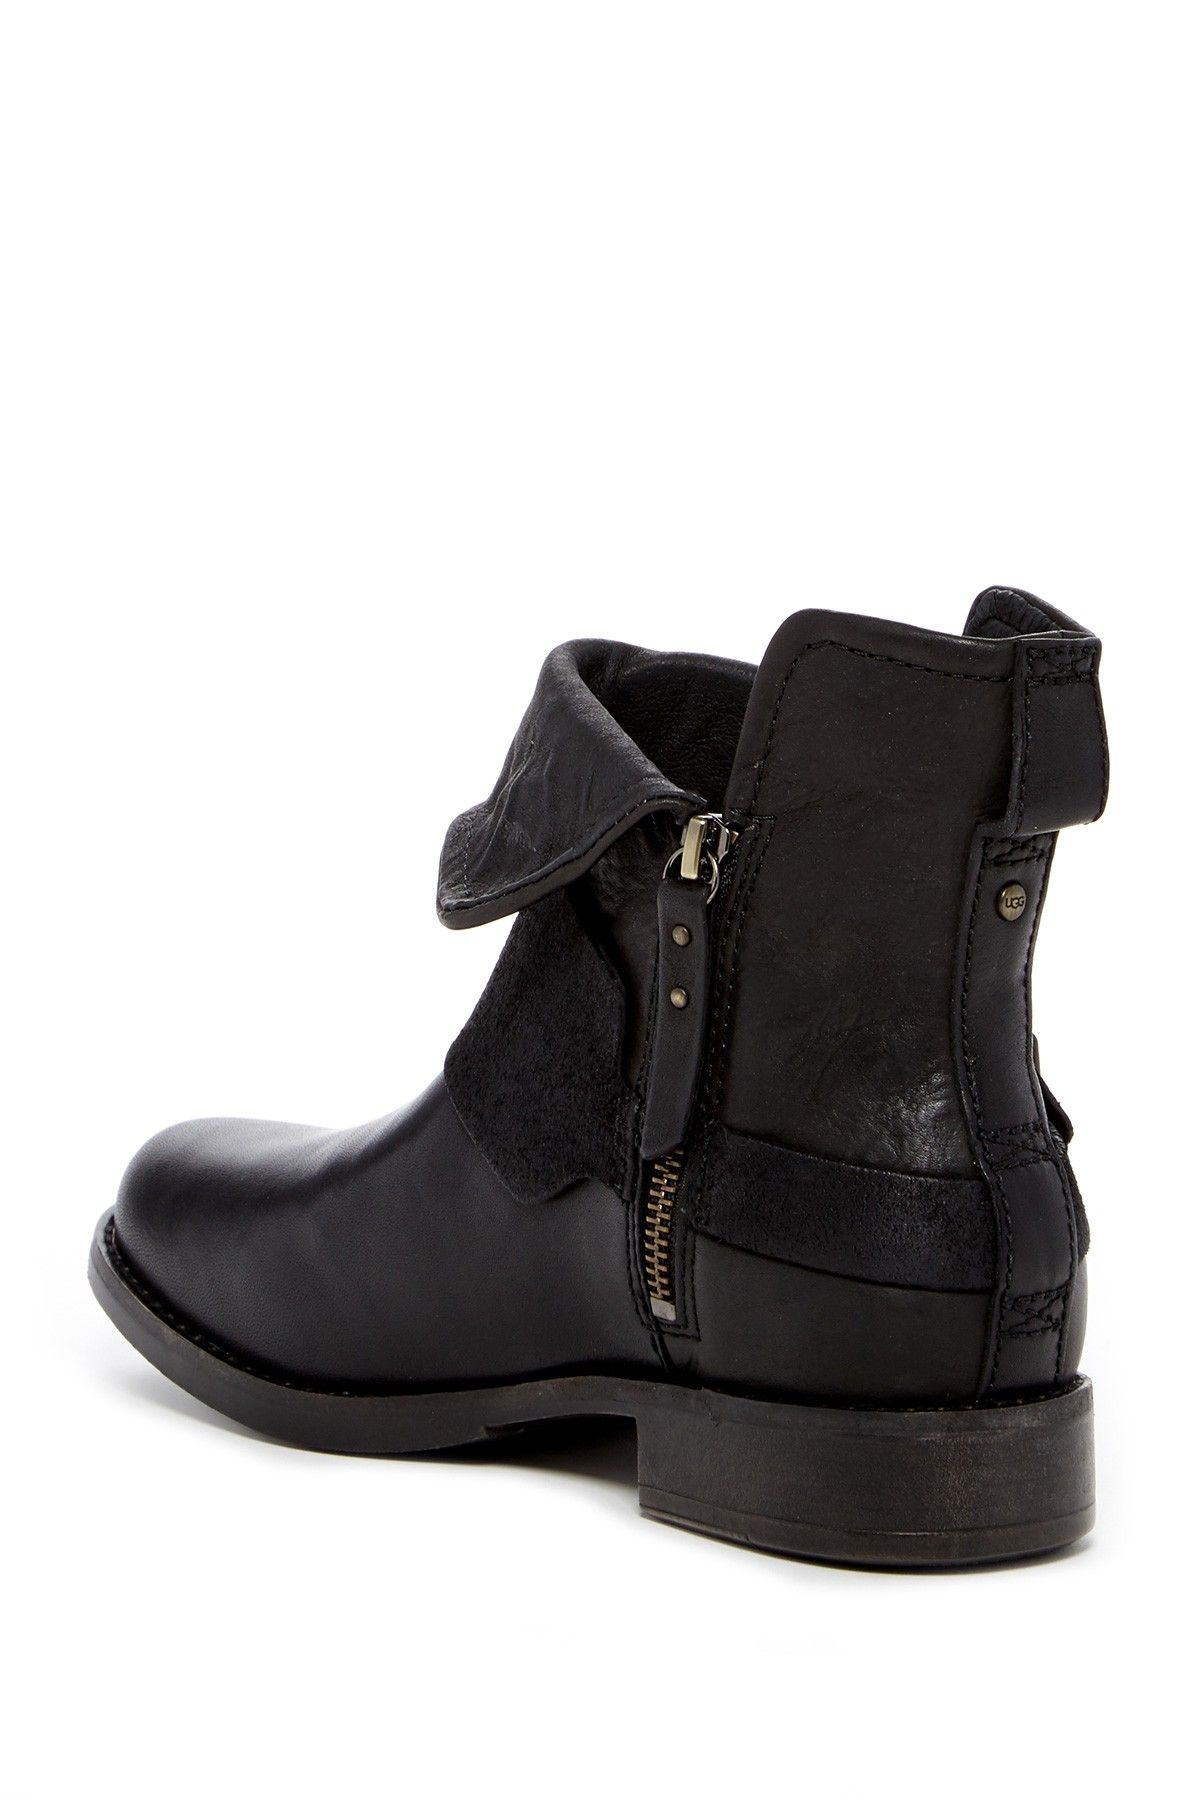 391a4ff4478 Cybele Genuine Lamb Fur Ankle Boot | Boots and Shoes | Fur ankle ...